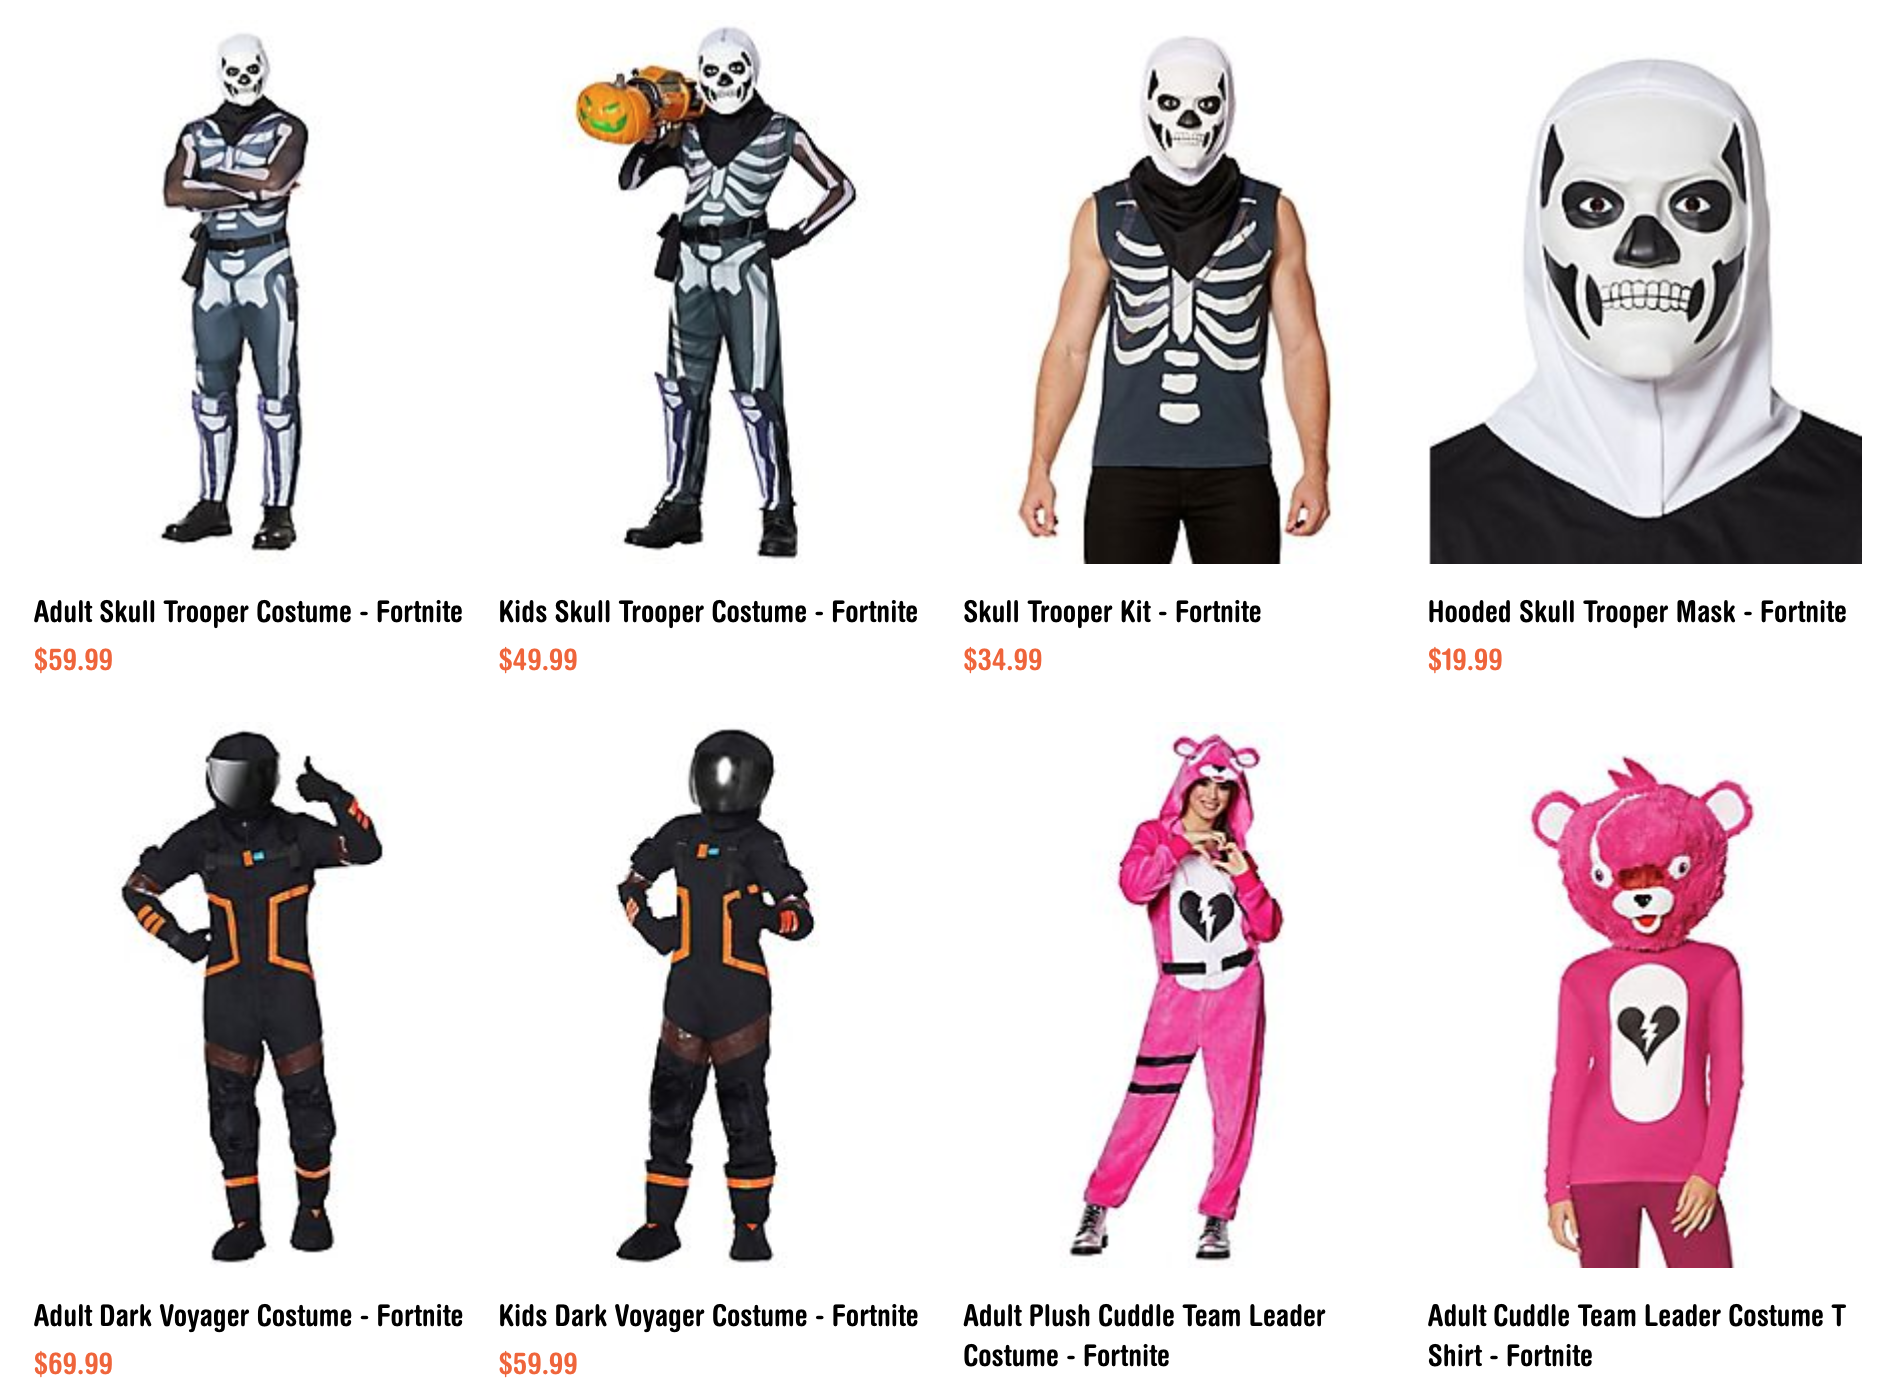 Dress Up Like Your Favorite Fortnite Characters This Halloween